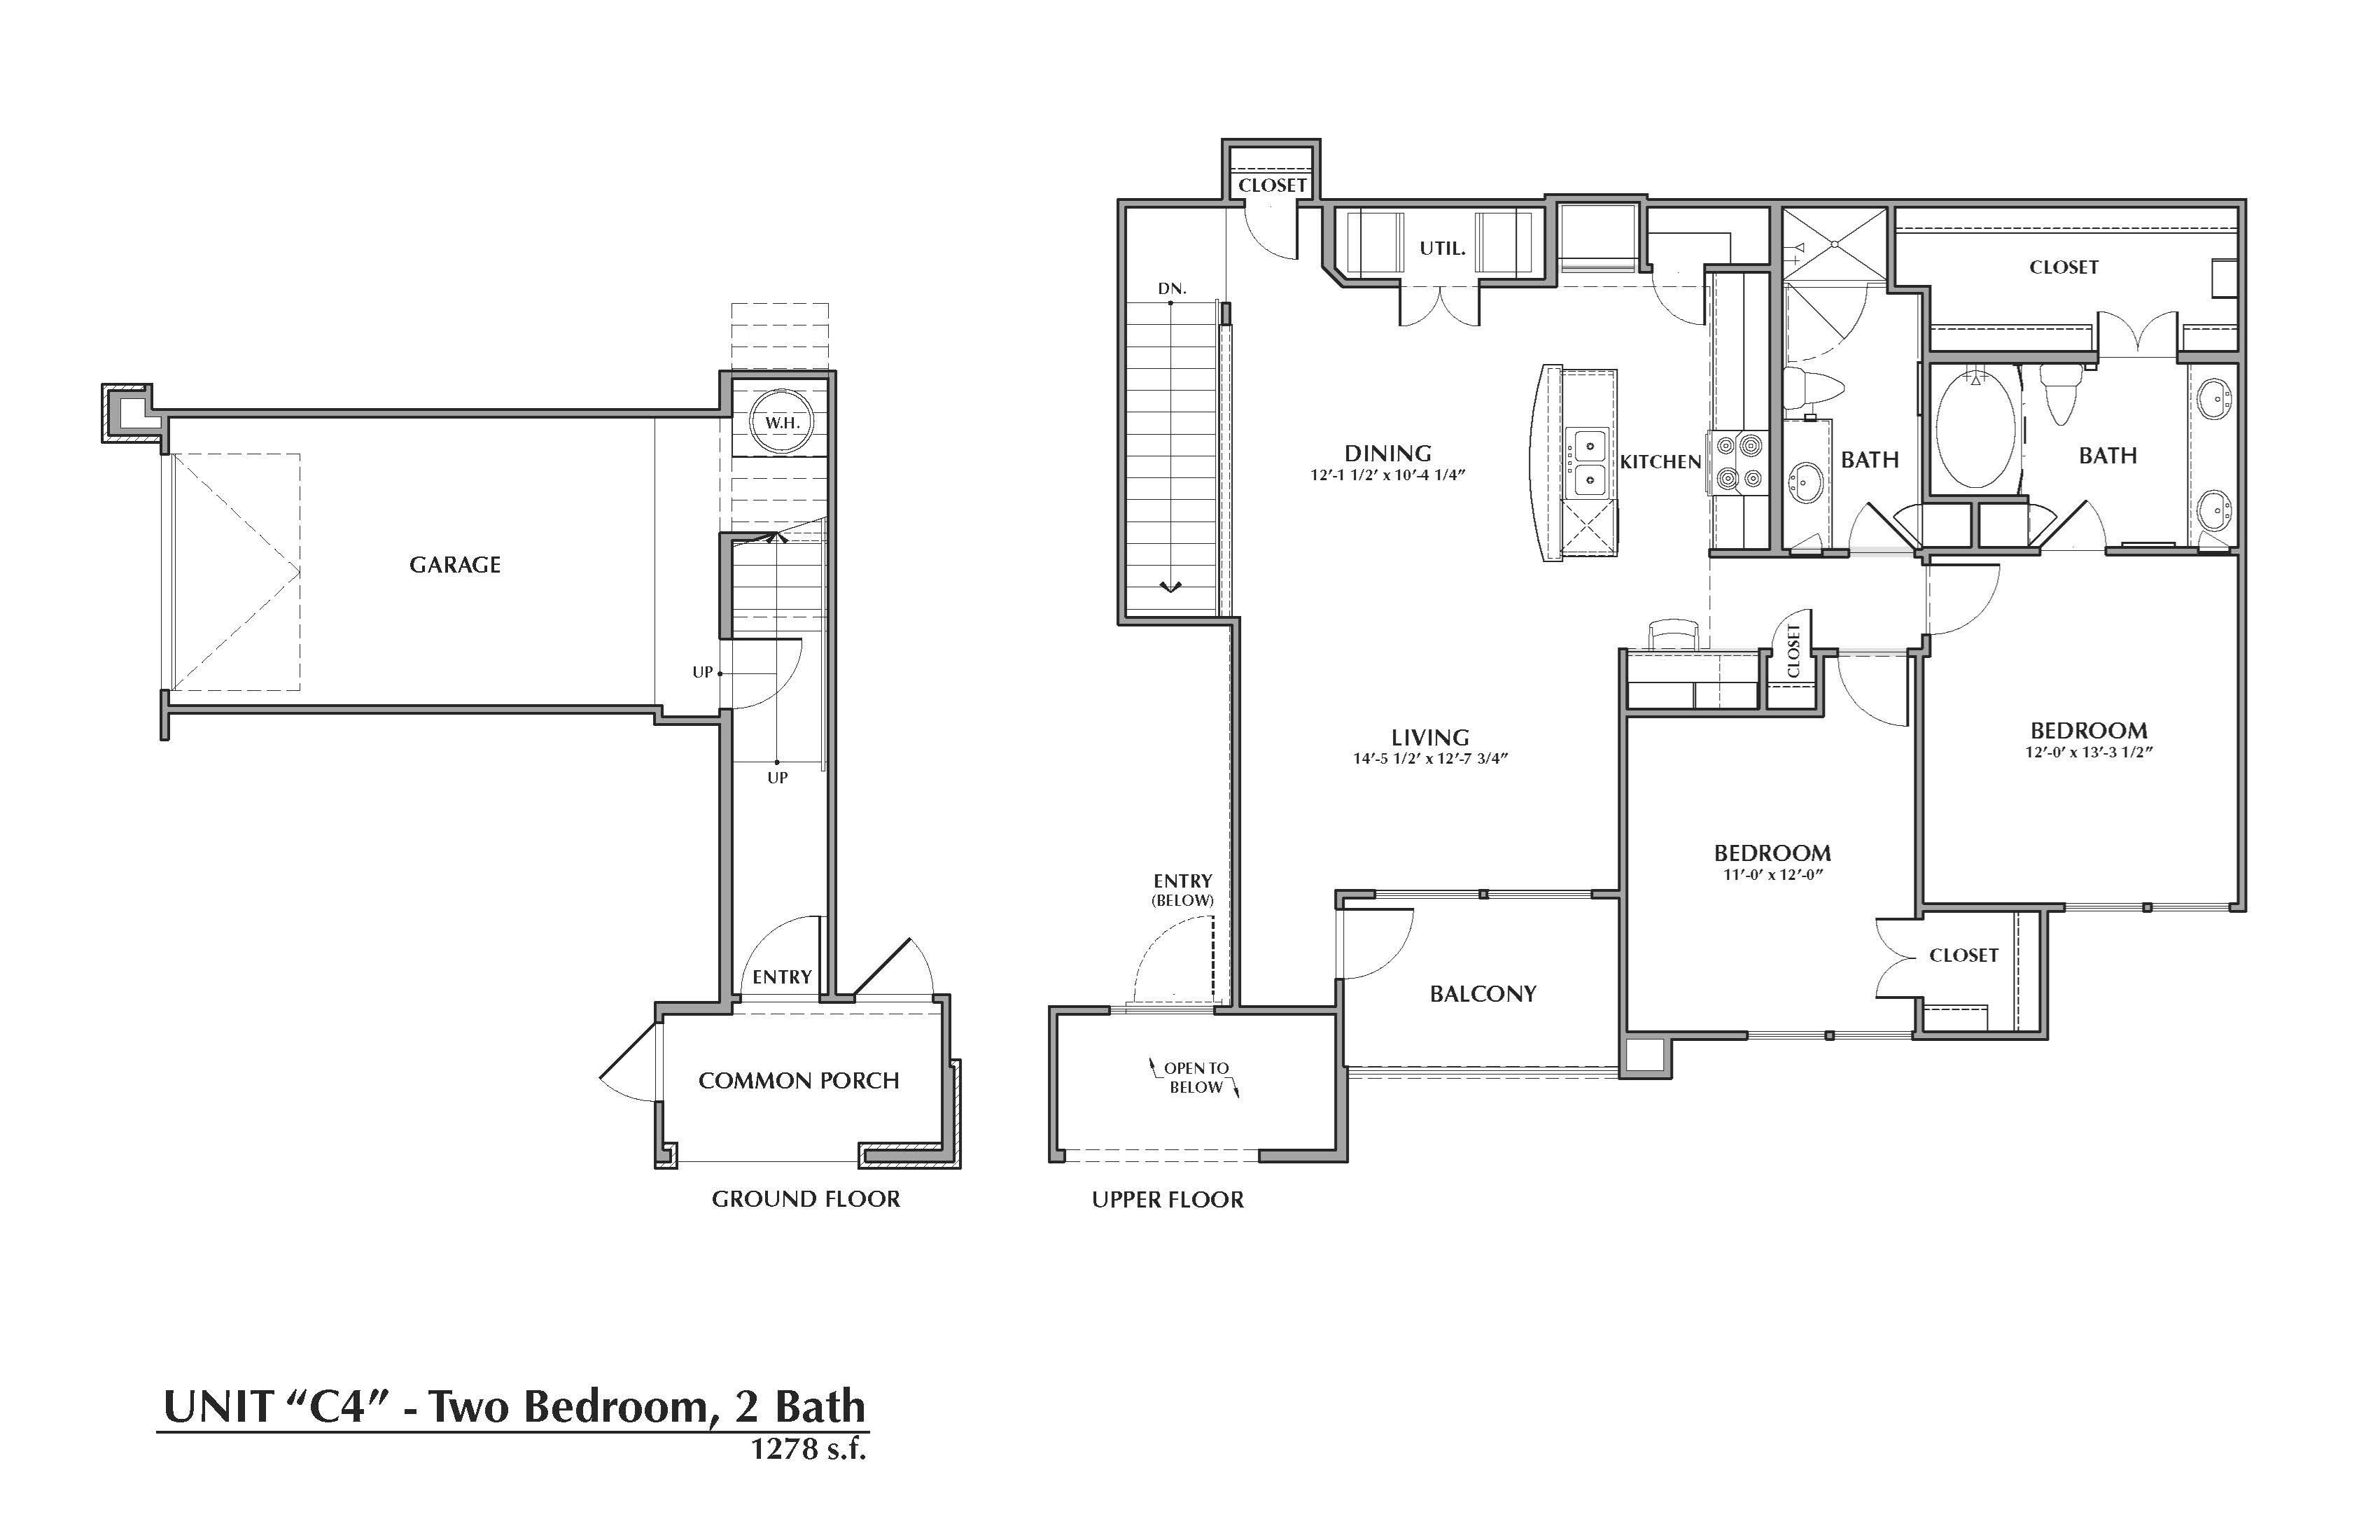 C4-Senegal, 2x2 1278sf (with attached garage) Floor Plan 16